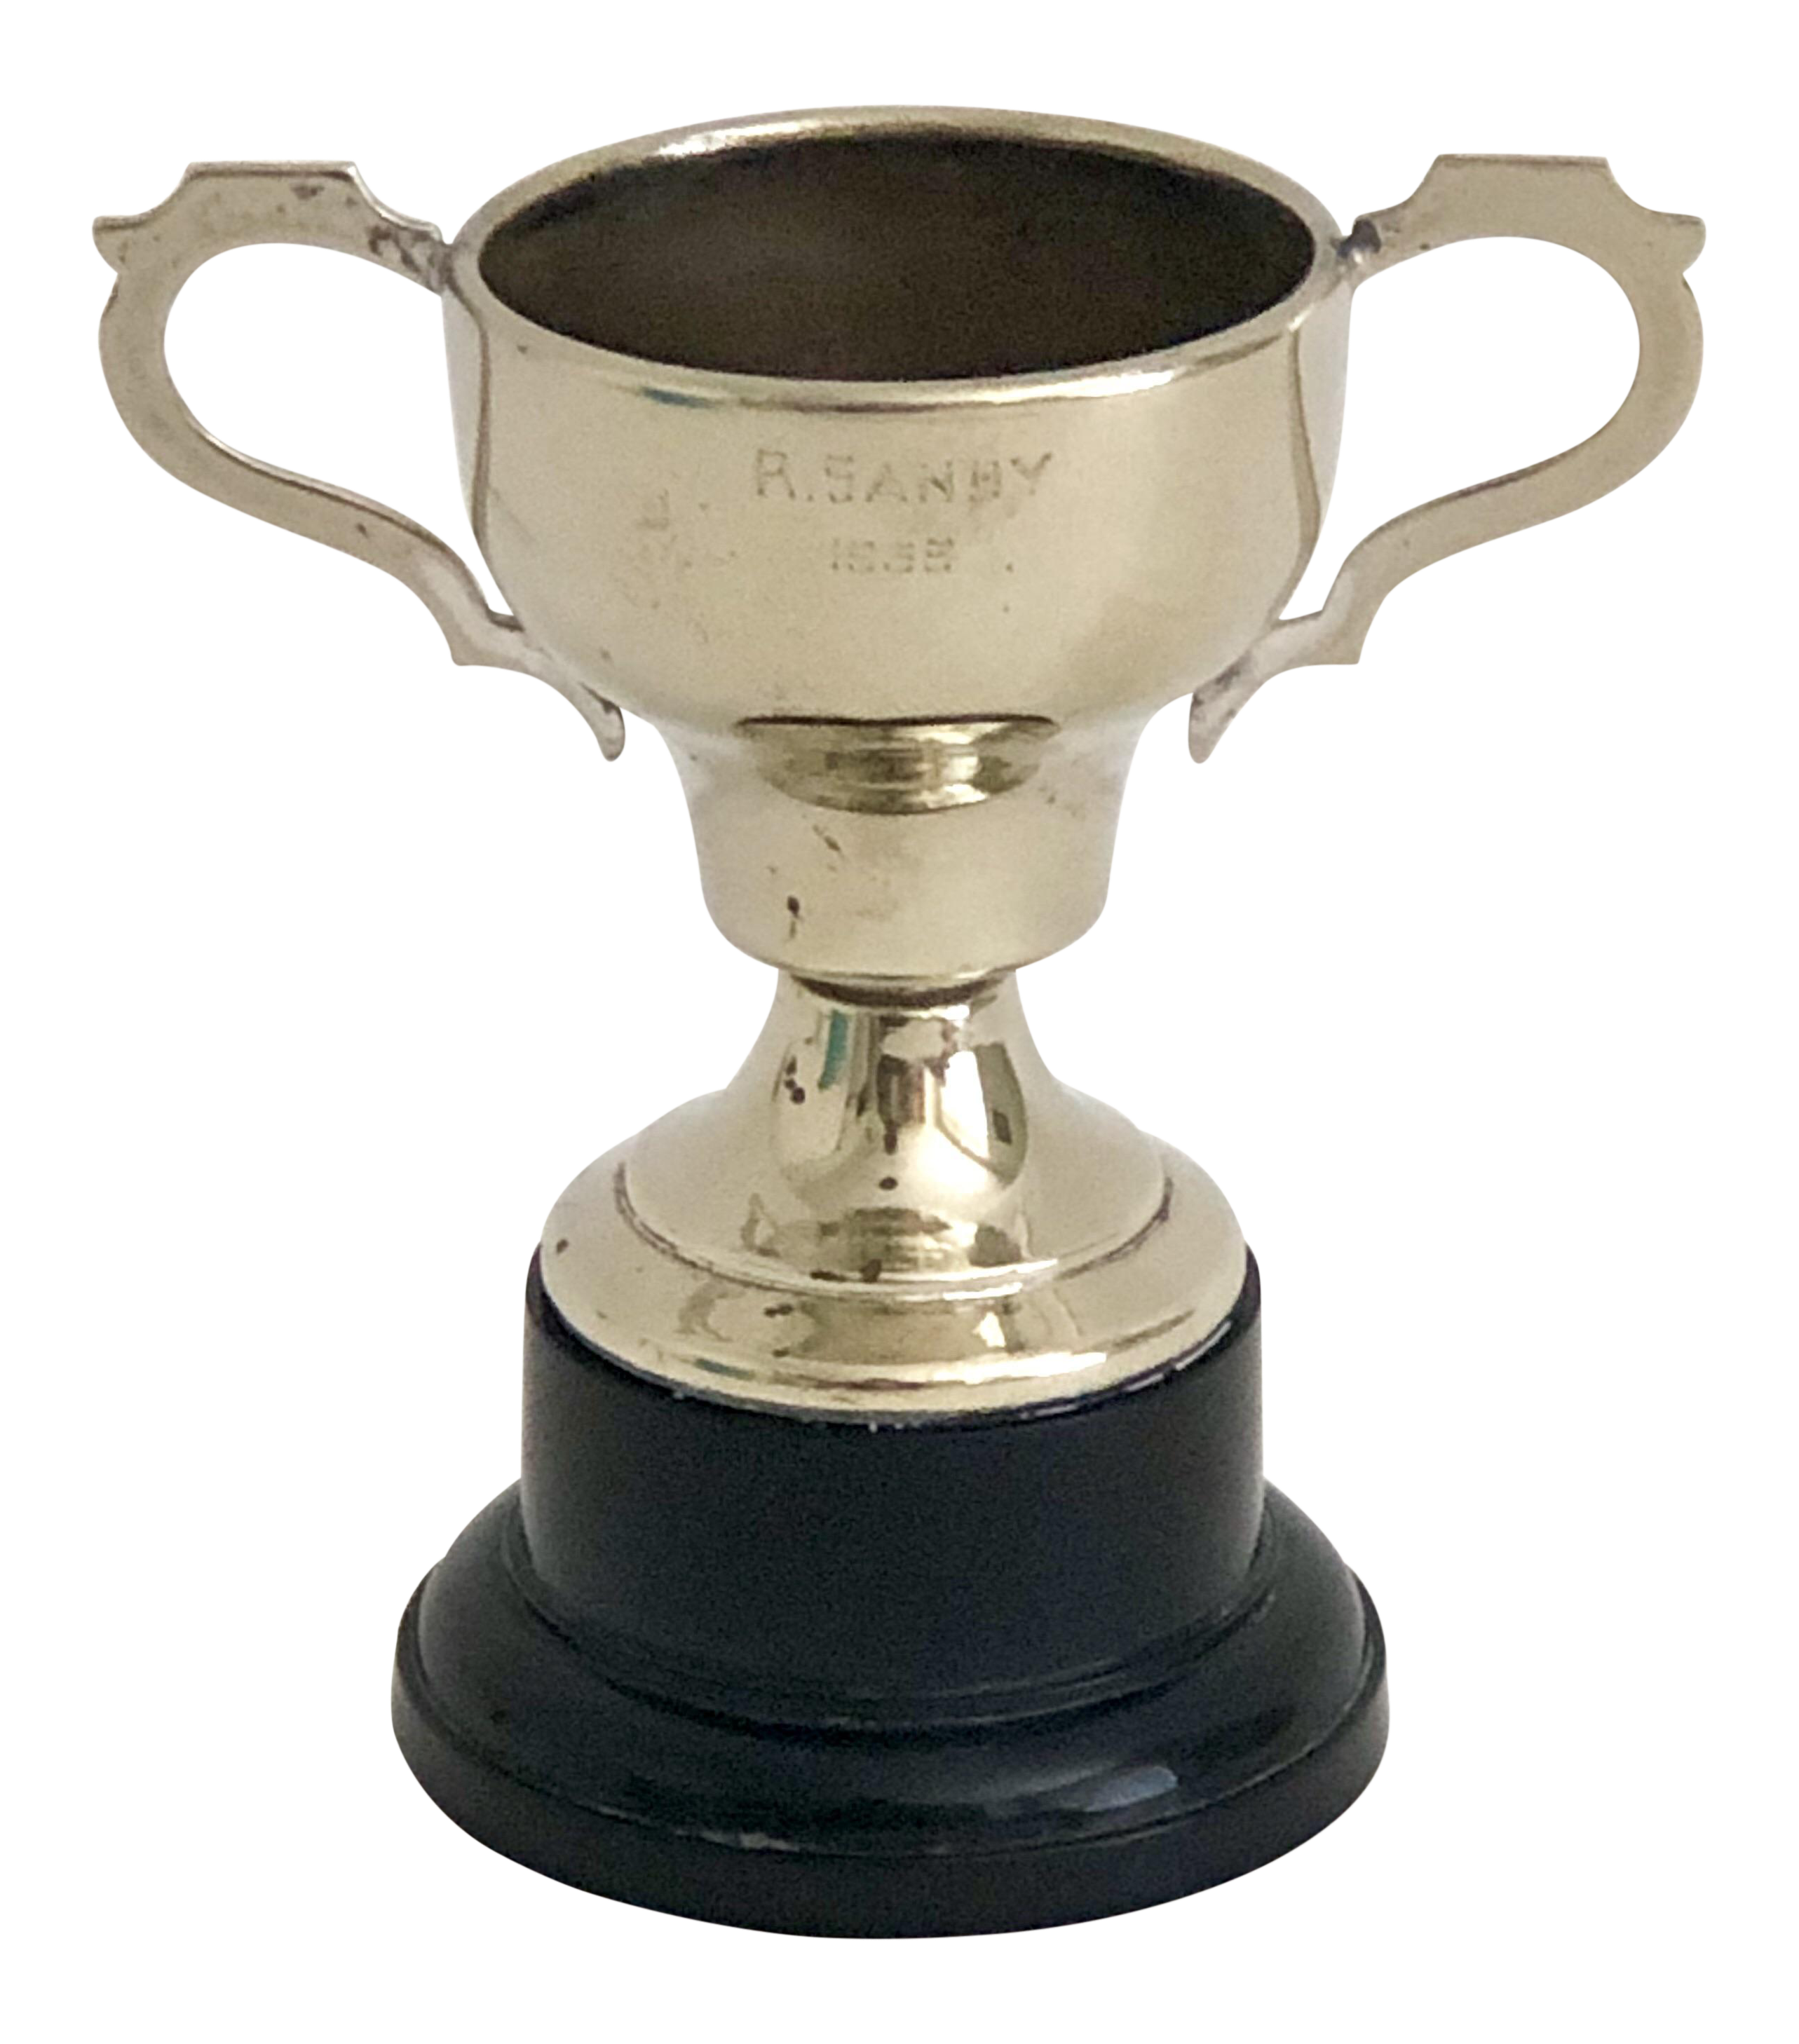 1959 Silver Trophy Sandy On Chairish Com Trophy Engraving Silver Plate Glassware